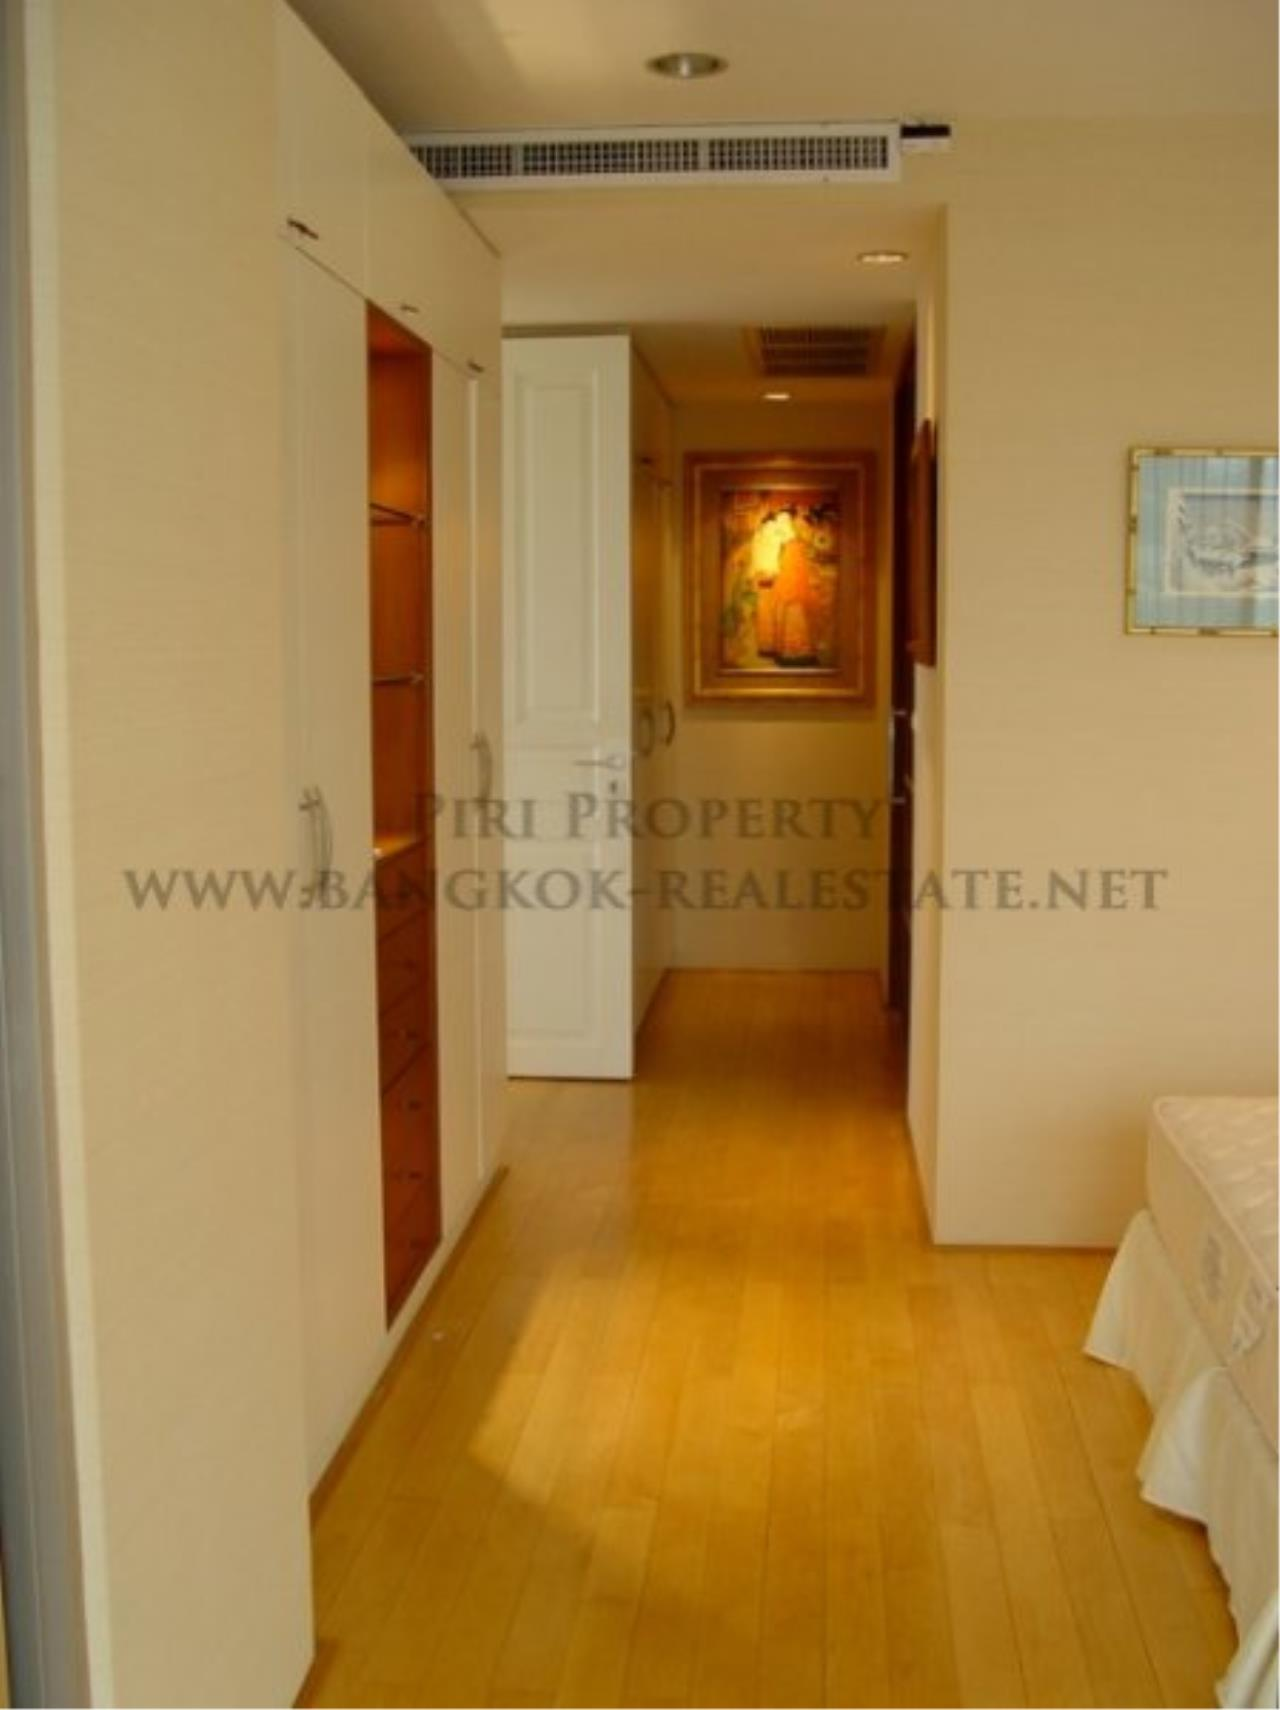 Piri Property Agency's Polo Park Condominium - Huge 2 Bedroom with 220 SQM 10